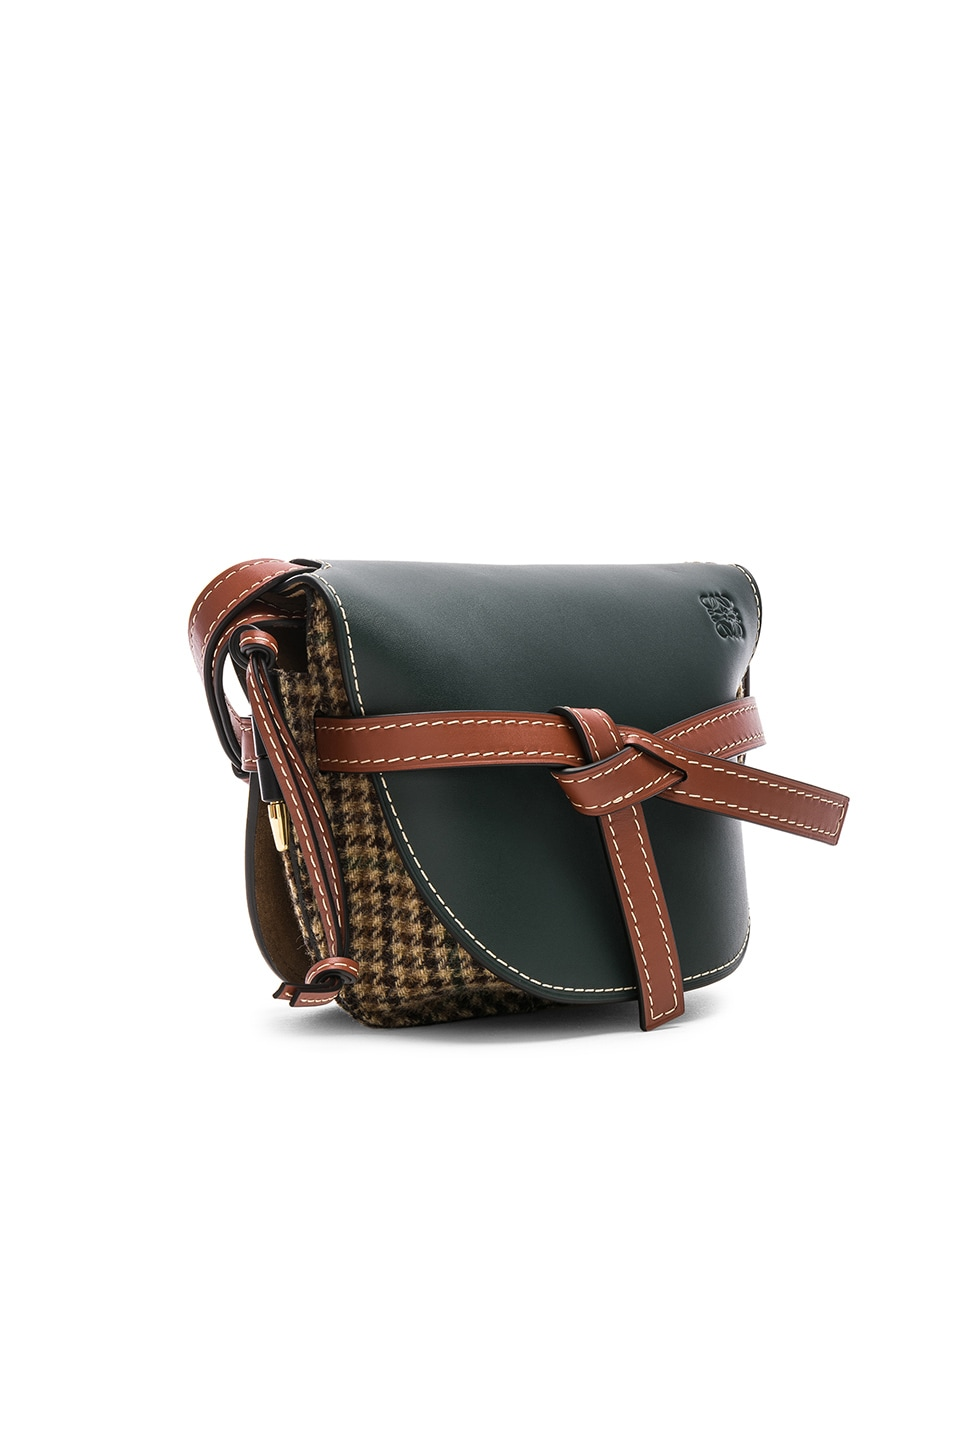 e121644555daf Image 4 of Loewe Gate Tweed Small Bag in Cypress   Tan